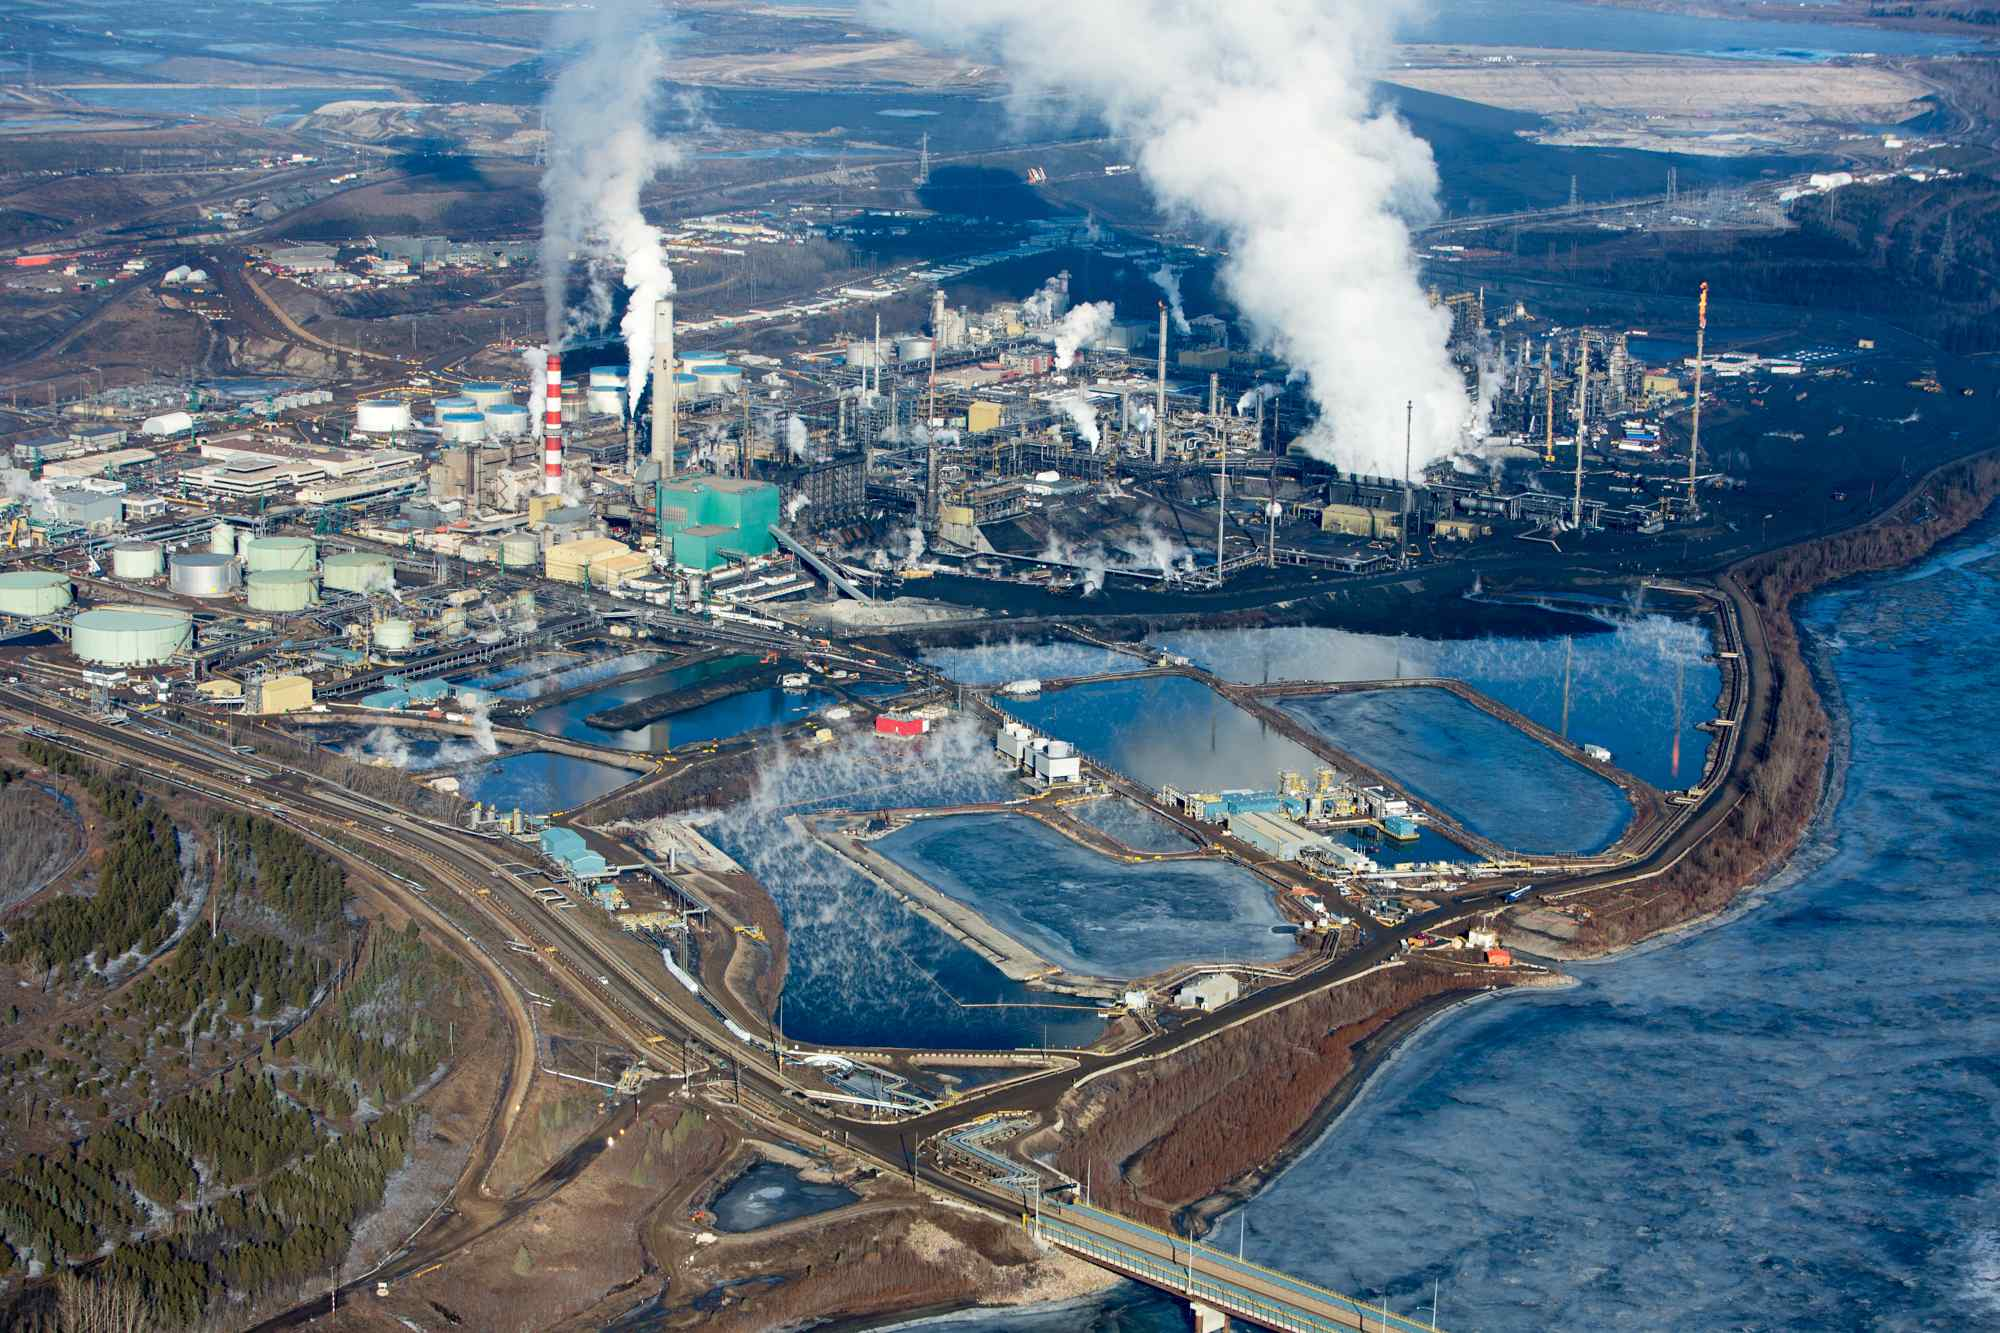 oil sands essay Read this essay on canada's oil sands come browse our large digital warehouse of free sample essays get the knowledge you need in order to pass your classes and more.